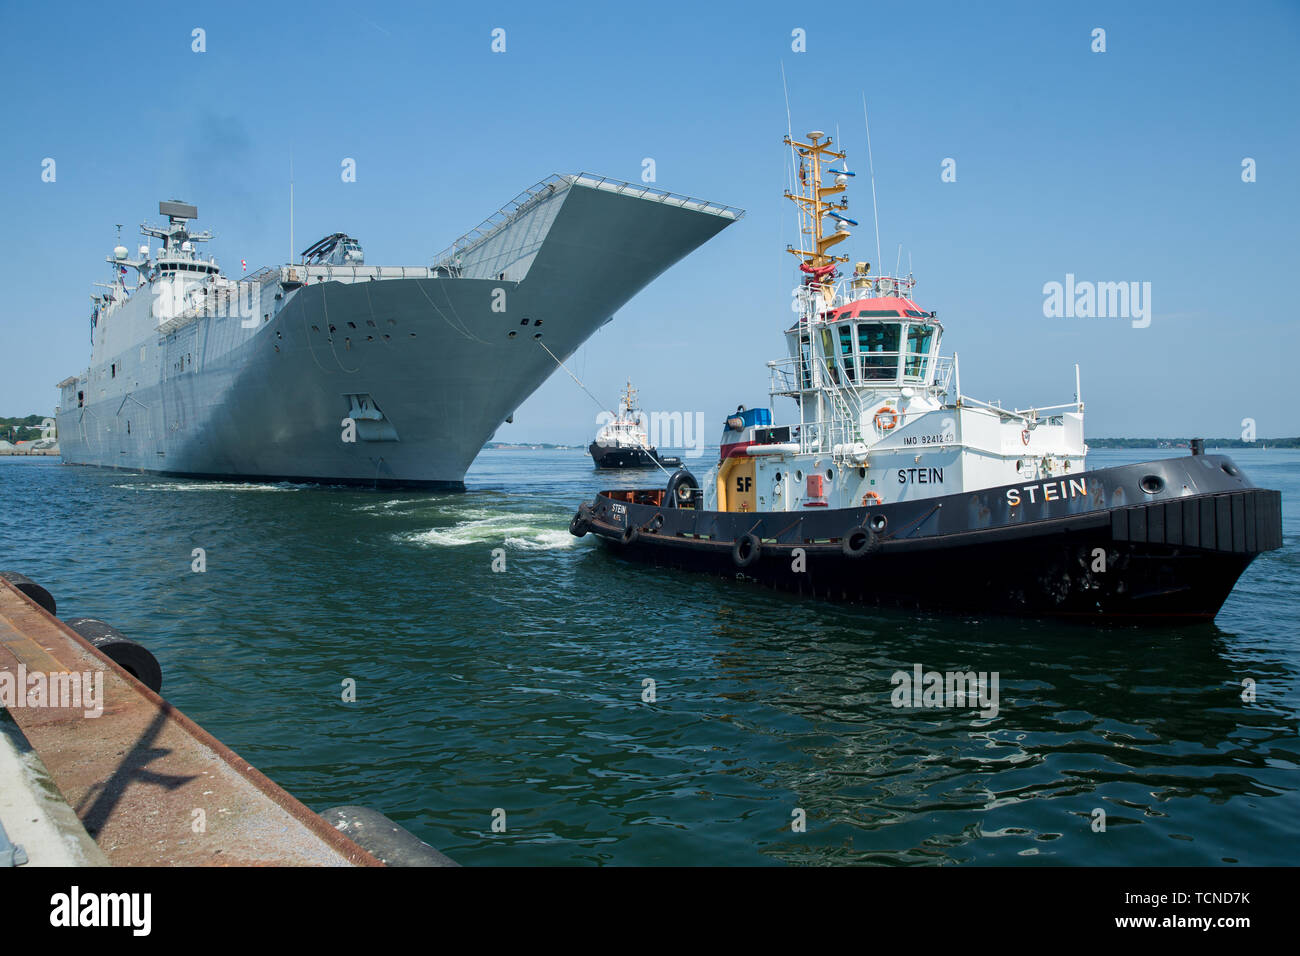 Spanish Navy multi-purpose amphibious assault ship Juan Carlos I (L61), prepares to moor at Naval Base Kiel-Tirpitzhafen, Germany in preparation of exercise Baltic Operations (BALTOPS) 2019, June 5, 2019. BALTOPS is the premier annual maritime-focused exercise in the Baltic region, marking the 47th year of one of the largest exercises in Northern Europe enhancing flexibility and interoperability among allied and partner nations. (U.S. Marine Corps photo by Cpl. Abrey Liggins) Stock Photo